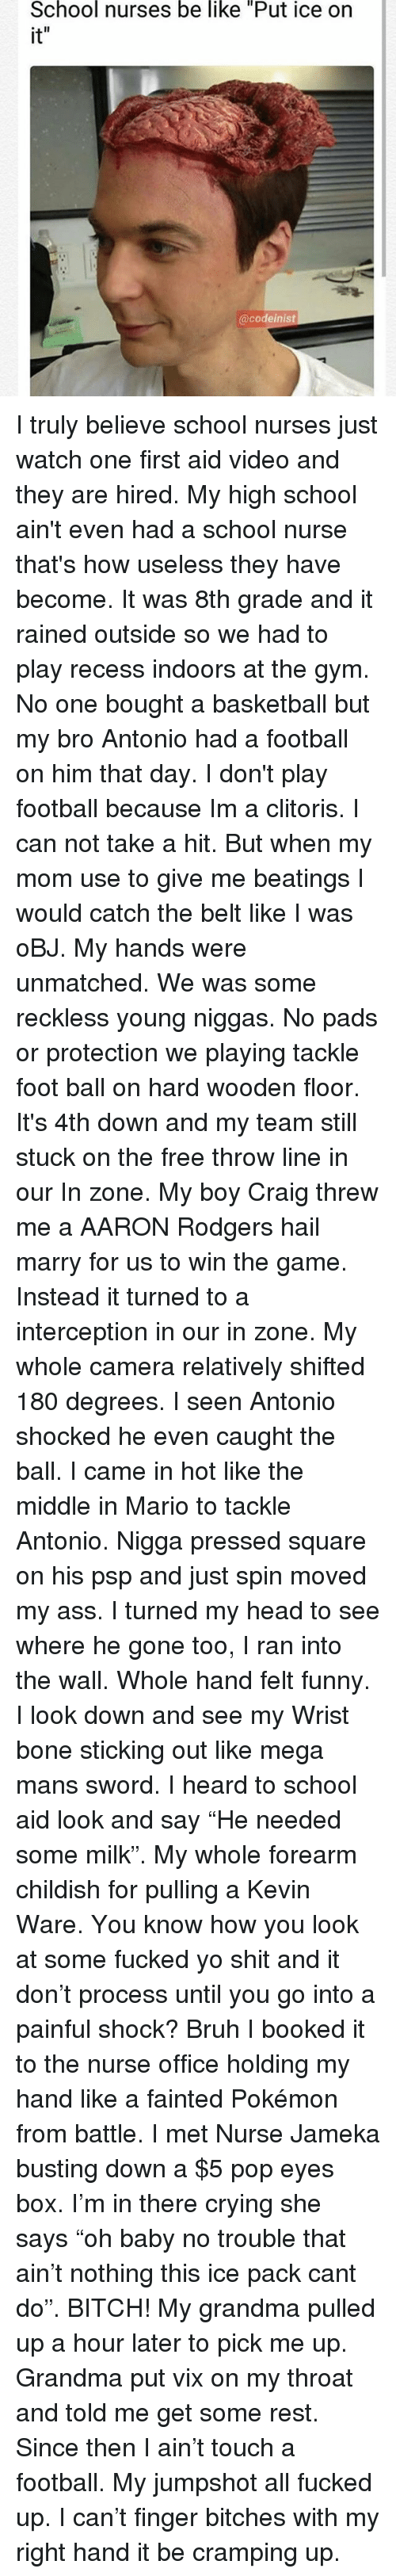 "Aaron Rodgers, Ass, and Basketball: School nurses be like ""Put ice on  it  @codeinist I truly believe school nurses just watch one first aid video and they are hired. My high school ain't even had a school nurse that's how useless they have become. It was 8th grade and it rained outside so we had to play recess indoors at the gym. No one bought a basketball but my bro Antonio had a football on him that day. I don't play football because Im a clitoris. I can not take a hit. But when my mom use to give me beatings I would catch the belt like I was oBJ. My hands were unmatched. We was some reckless young niggas. No pads or protection we playing tackle foot ball on hard wooden floor. It's 4th down and my team still stuck on the free throw line in our In zone. My boy Craig threw me a AARON Rodgers hail marry for us to win the game. Instead it turned to a interception in our in zone. My whole camera relatively shifted 180 degrees. I seen Antonio shocked he even caught the ball. I came in hot like the middle in Mario to tackle Antonio. Nigga pressed square on his psp and just spin moved my ass. I turned my head to see where he gone too, I ran into the wall. Whole hand felt funny. I look down and see my Wrist bone sticking out like mega mans sword. I heard to school aid look and say ""He needed some milk"". My whole forearm childish for pulling a Kevin Ware. You know how you look at some fucked yo shit and it don't process until you go into a painful shock? Bruh I booked it to the nurse office holding my hand like a fainted Pokémon from battle. I met Nurse Jameka busting down a $5 pop eyes box. I'm in there crying she says ""oh baby no trouble that ain't nothing this ice pack cant do"". BITCH! My grandma pulled up a hour later to pick me up. Grandma put vix on my throat and told me get some rest. Since then I ain't touch a football. My jumpshot all fucked up. I can't finger bitches with my right hand it be cramping up."